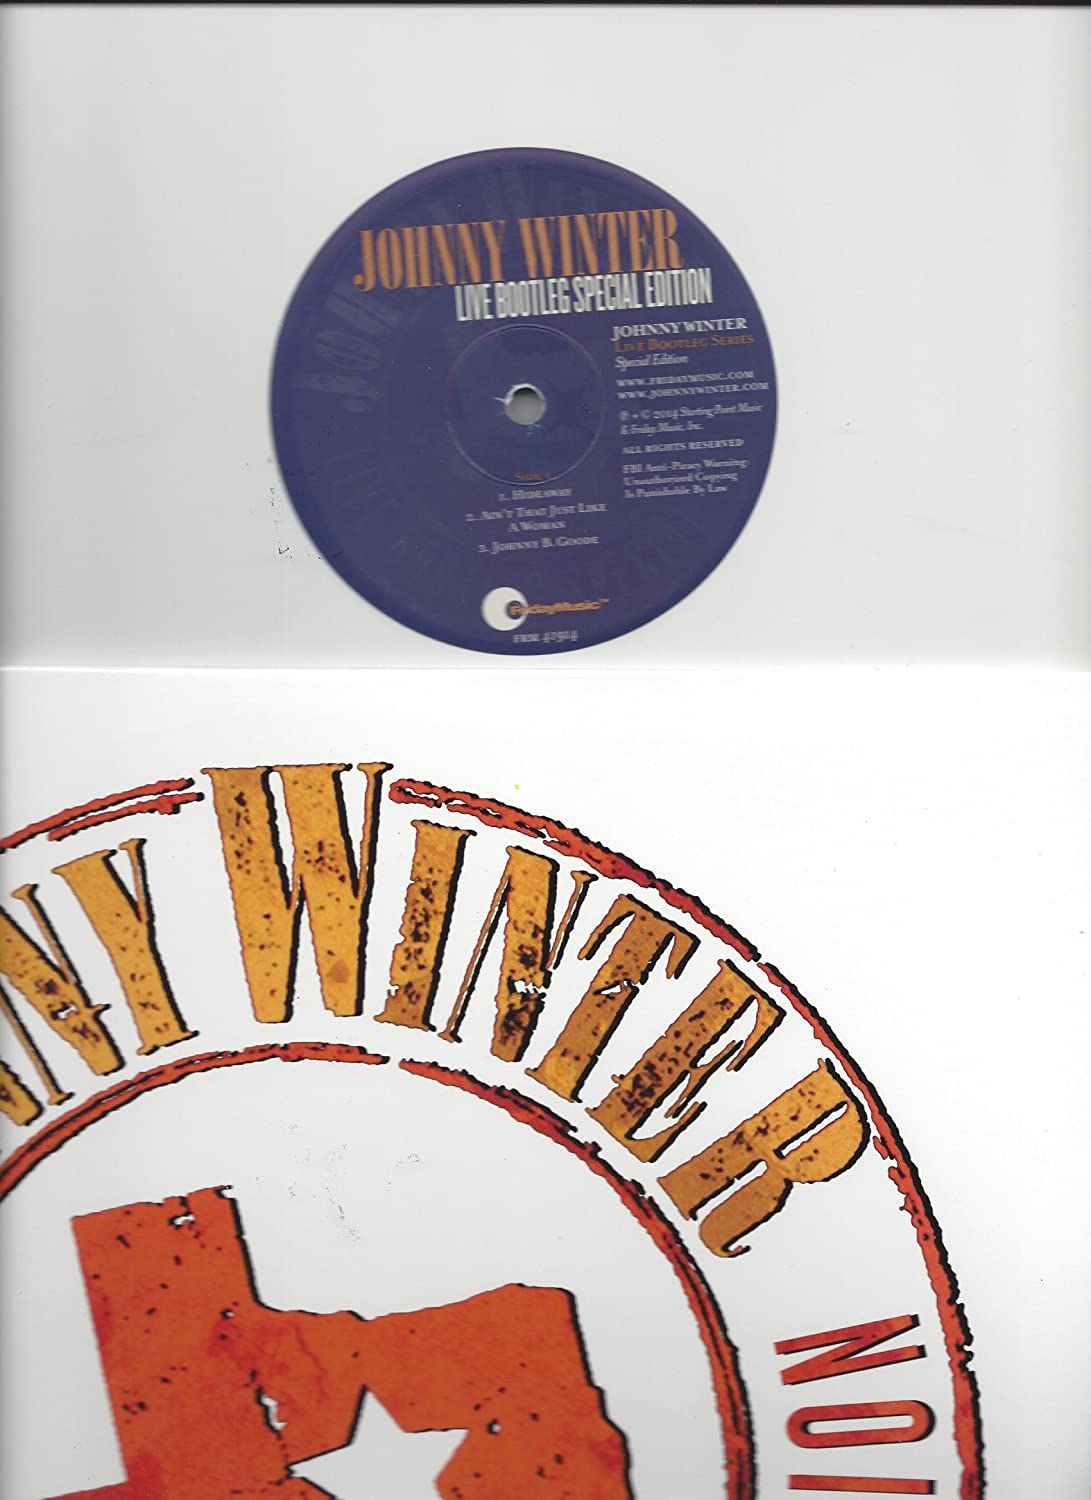 Johnny Winter Live Bootleg Series Vinyl Record Album LP 2014 Record Store  Day Only 1000